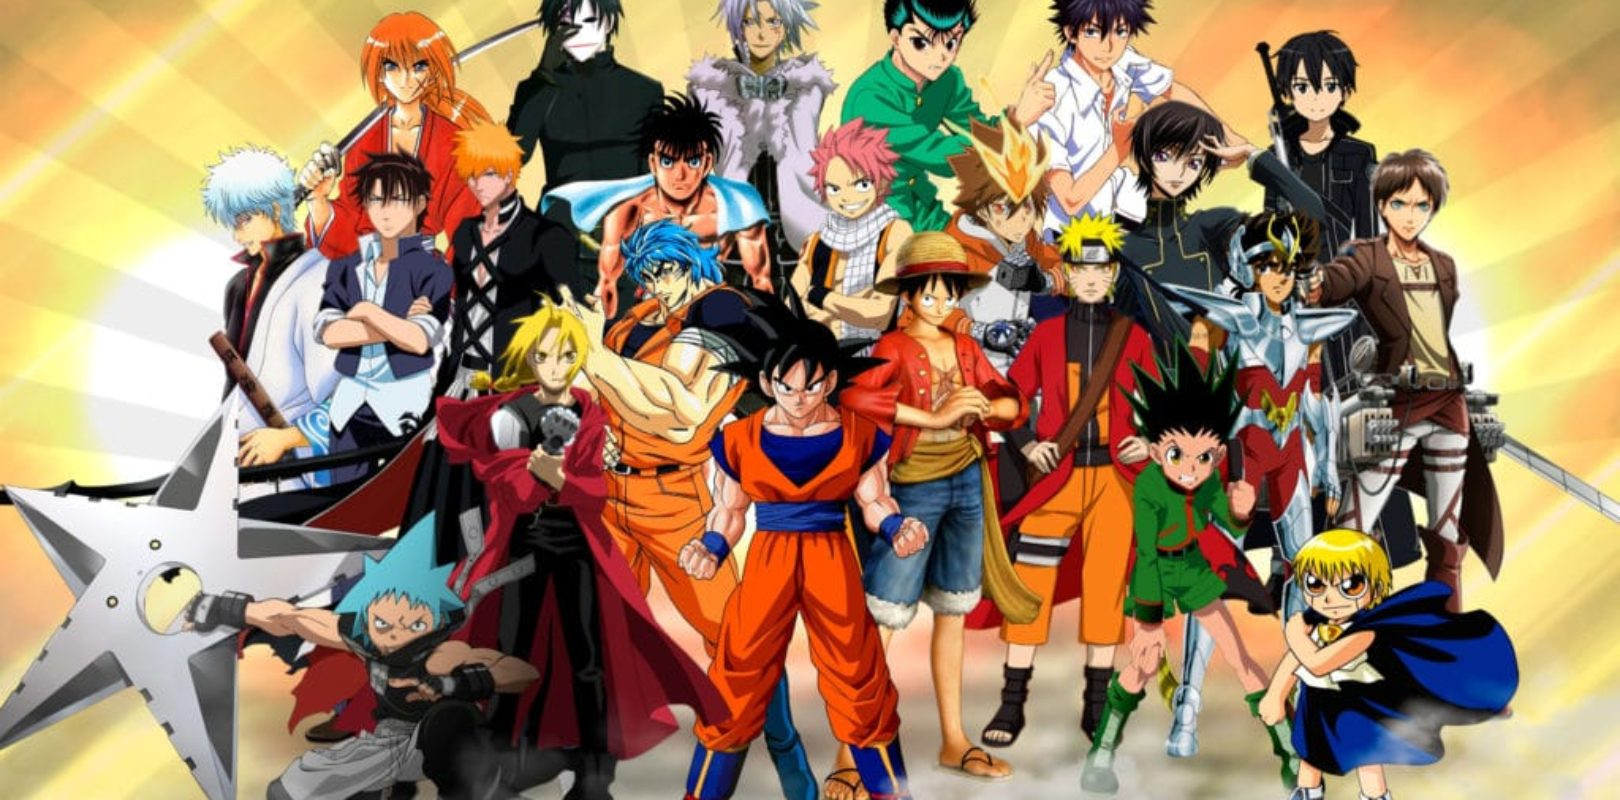 Best Animes Of 2020.15 Best Anime Of All Time That You Have To See 2020 Rivipedia